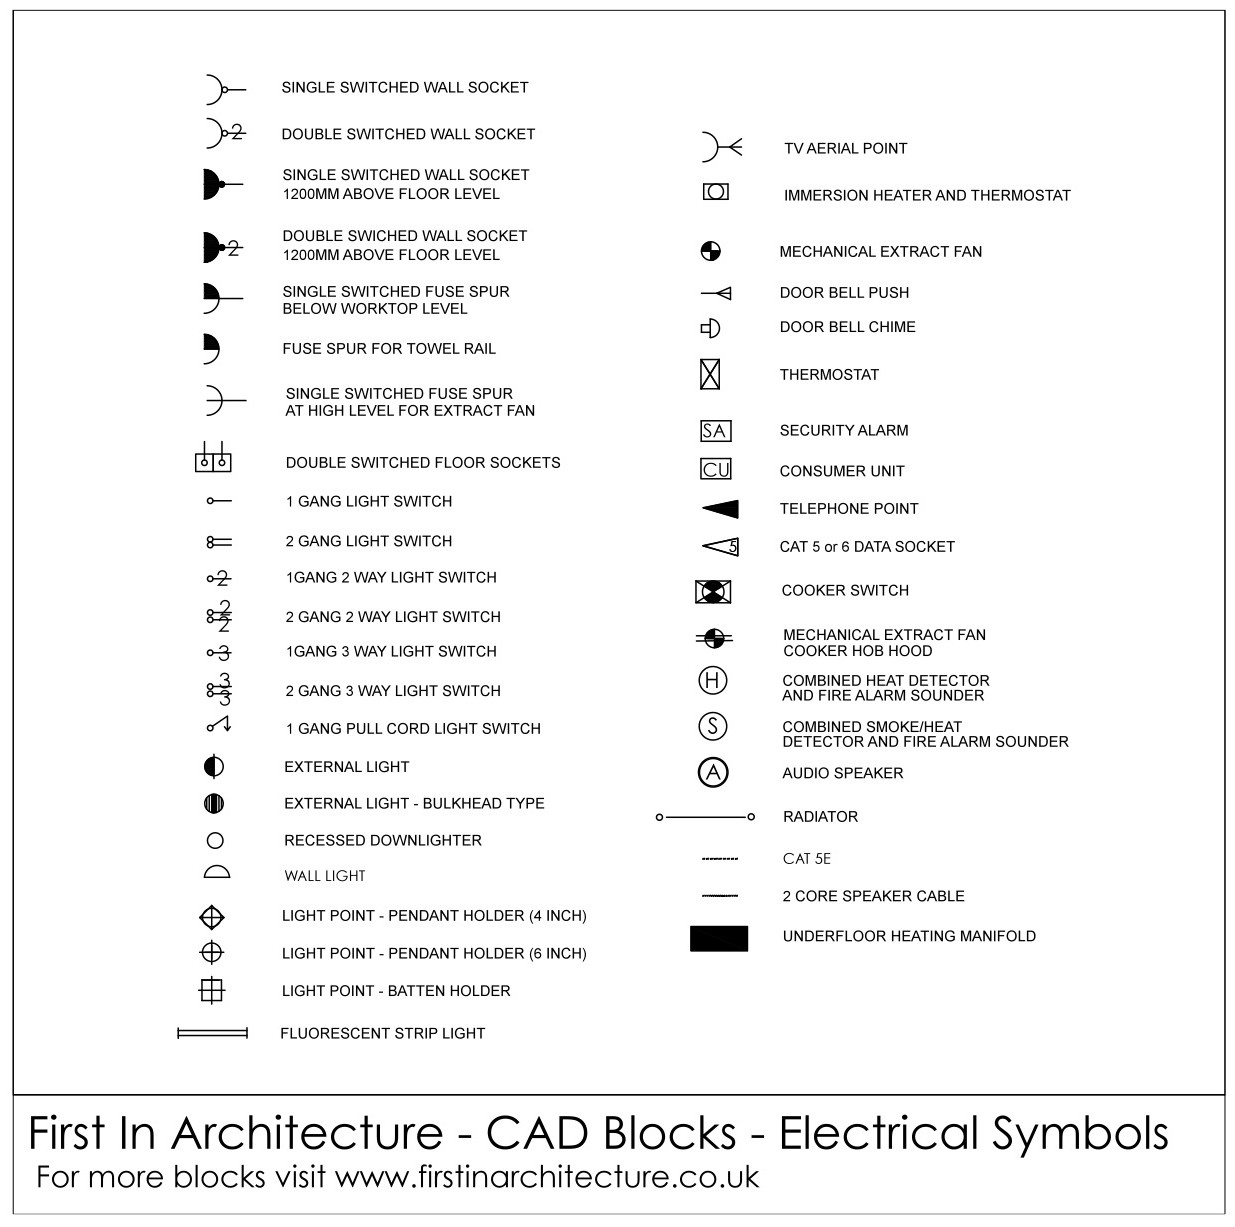 Free Cad Blocks Electrical Symbols